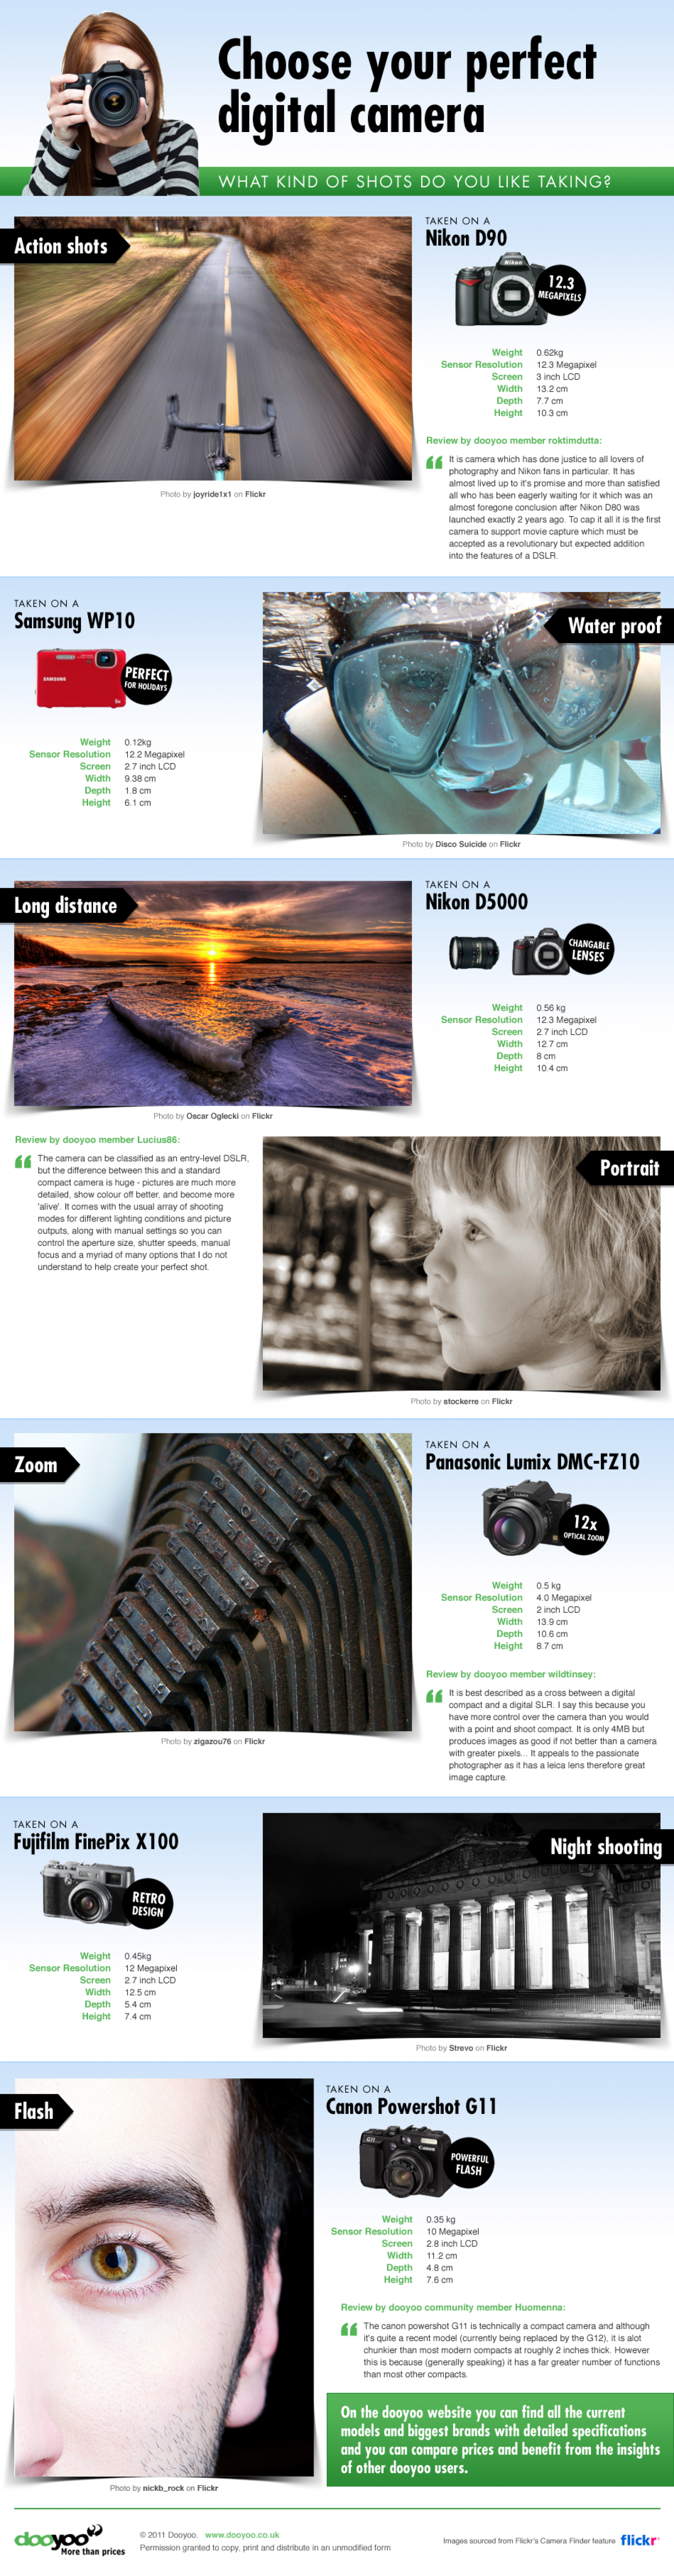 Choose Your Perfect Digital Camera Infographic